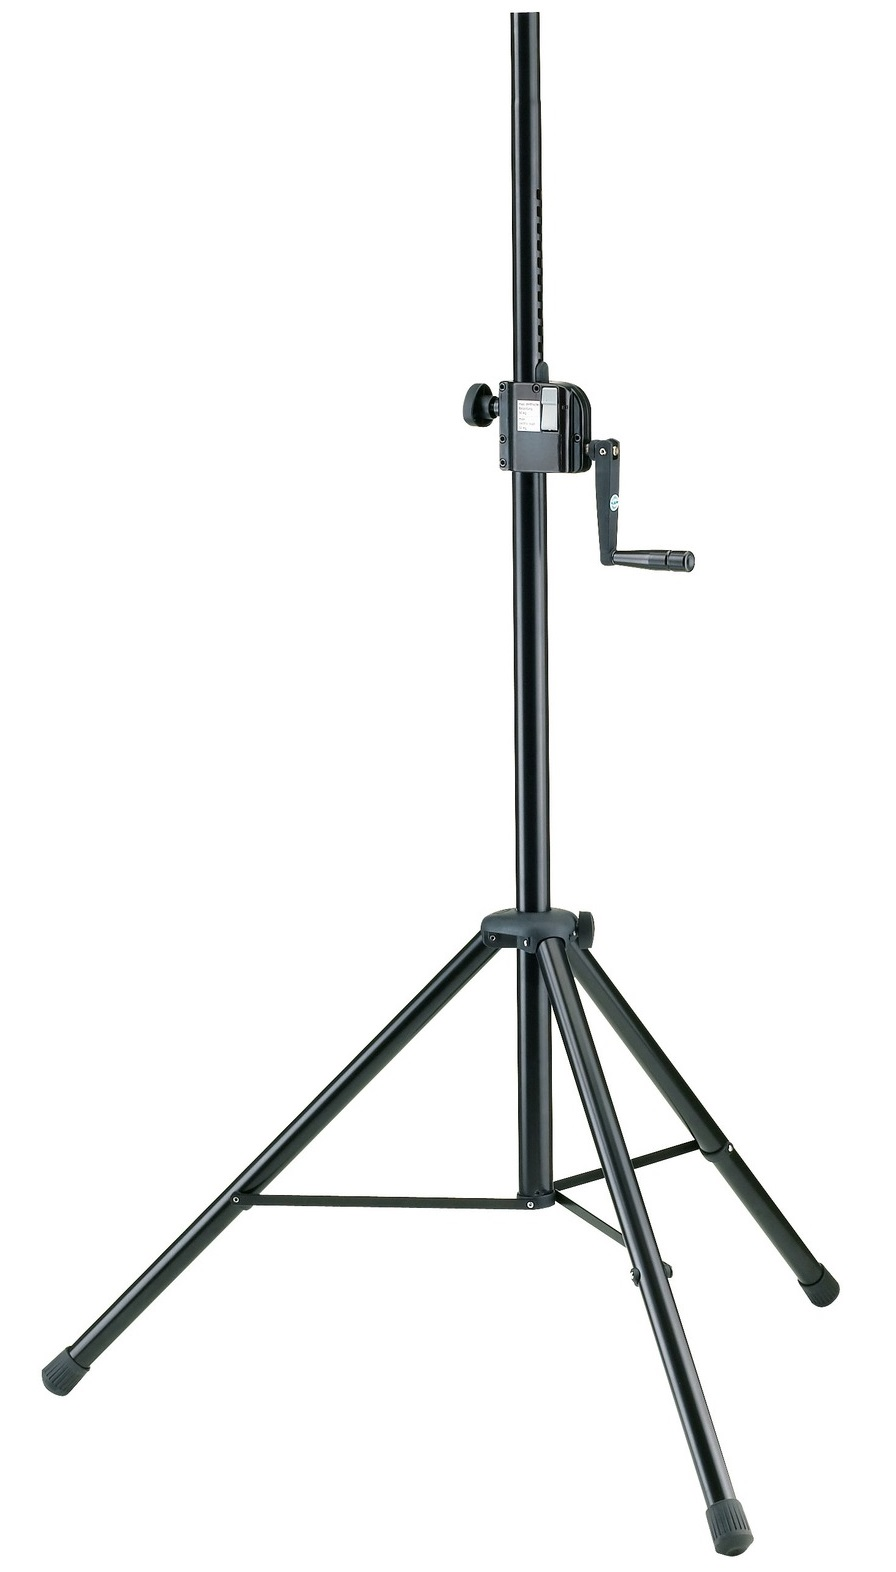 Image of   König & Meyer 21302 Højttalerstativ med wind-up (40kg/2,1m)